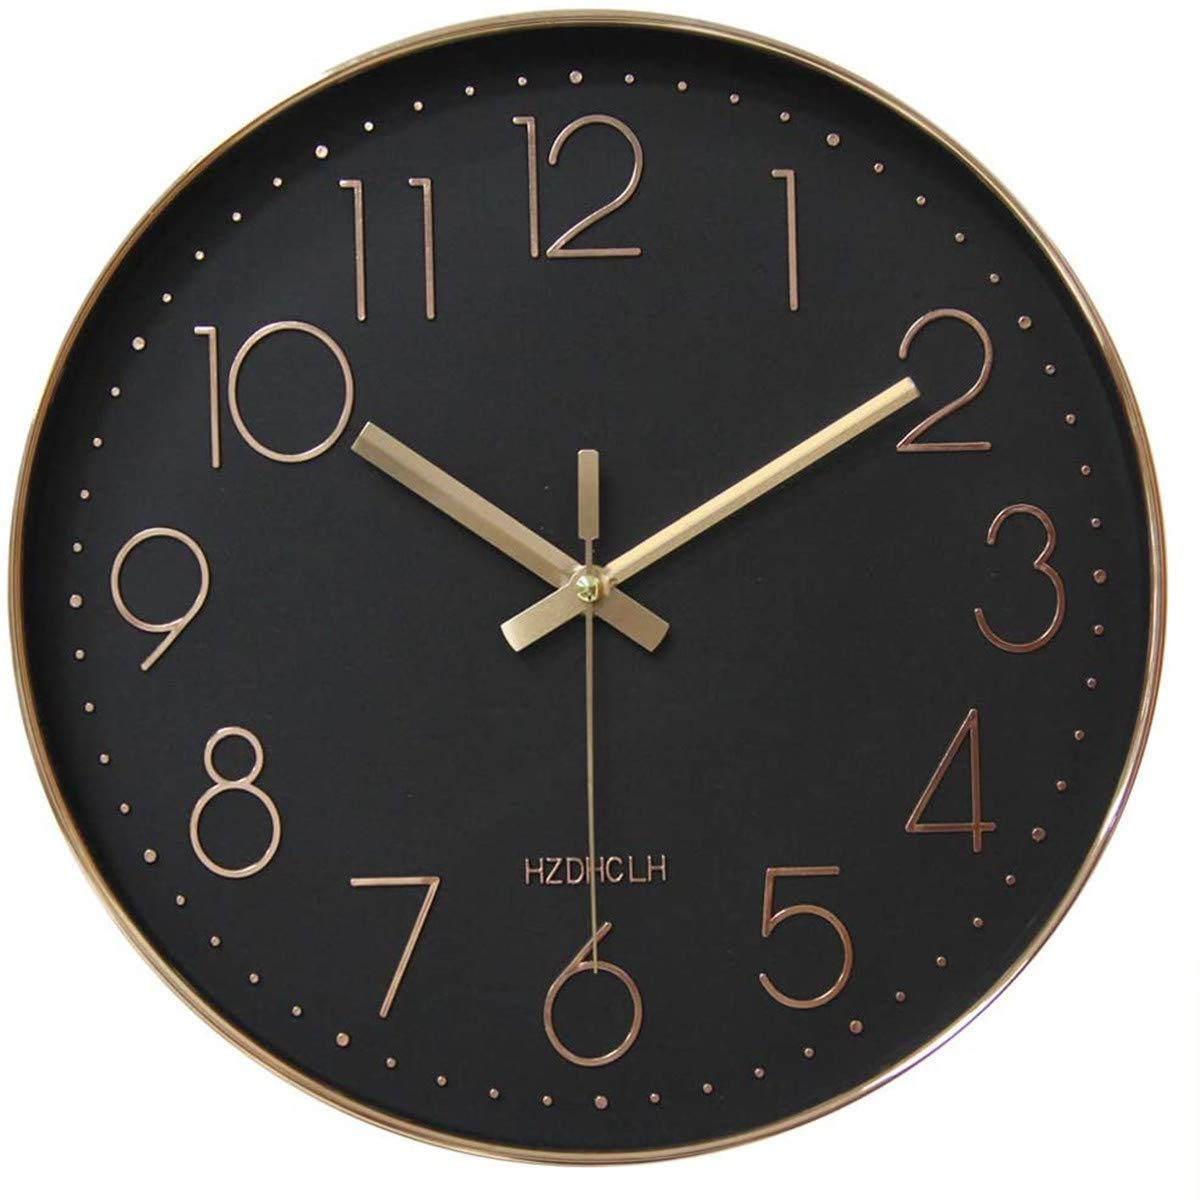 HZDHCLH Wall Clock 12 inch Silent Non Ticking Modern Wall Clocks Battery Operated Clocks for Kitchen Bedroom Living Room Decor(Black Rose Gold)